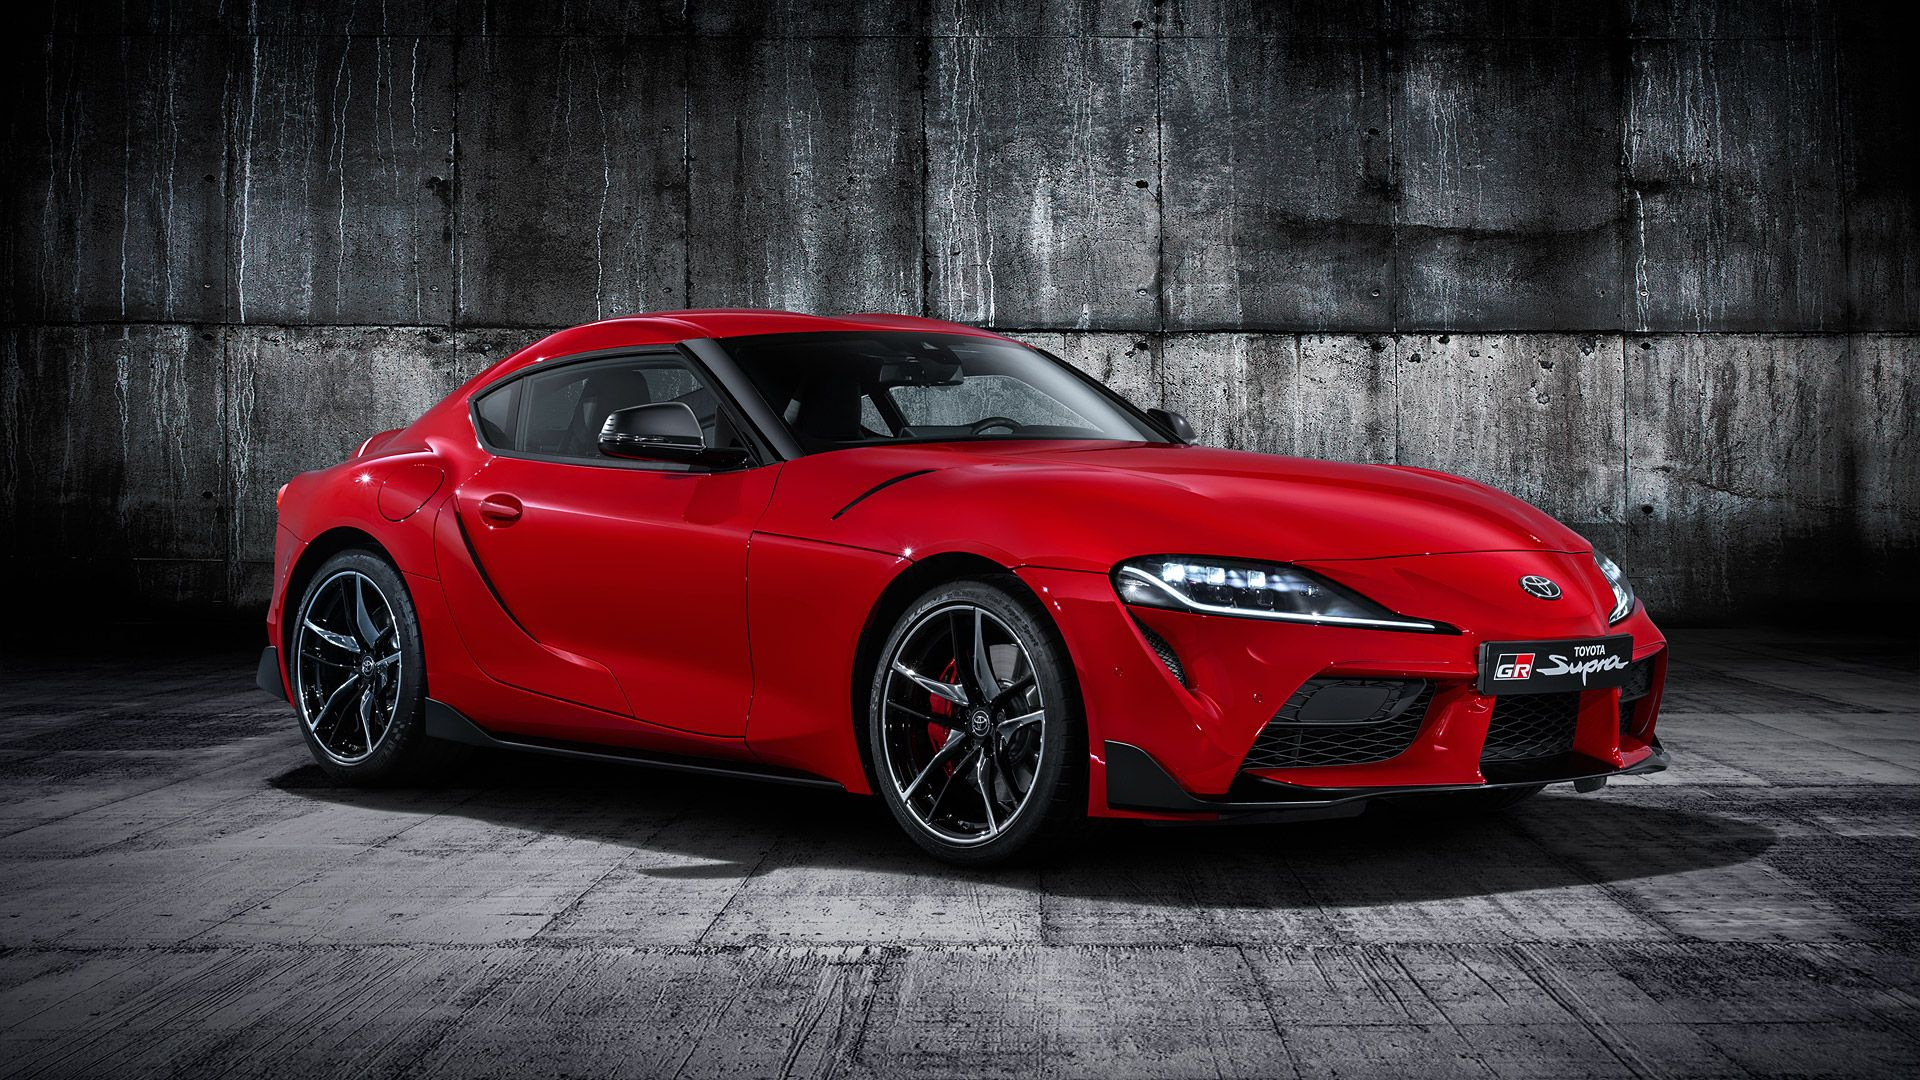 Toyota Supra 2020 Wallpapers Top Free Toyota Supra 2020 Backgrounds Wallpaperaccess